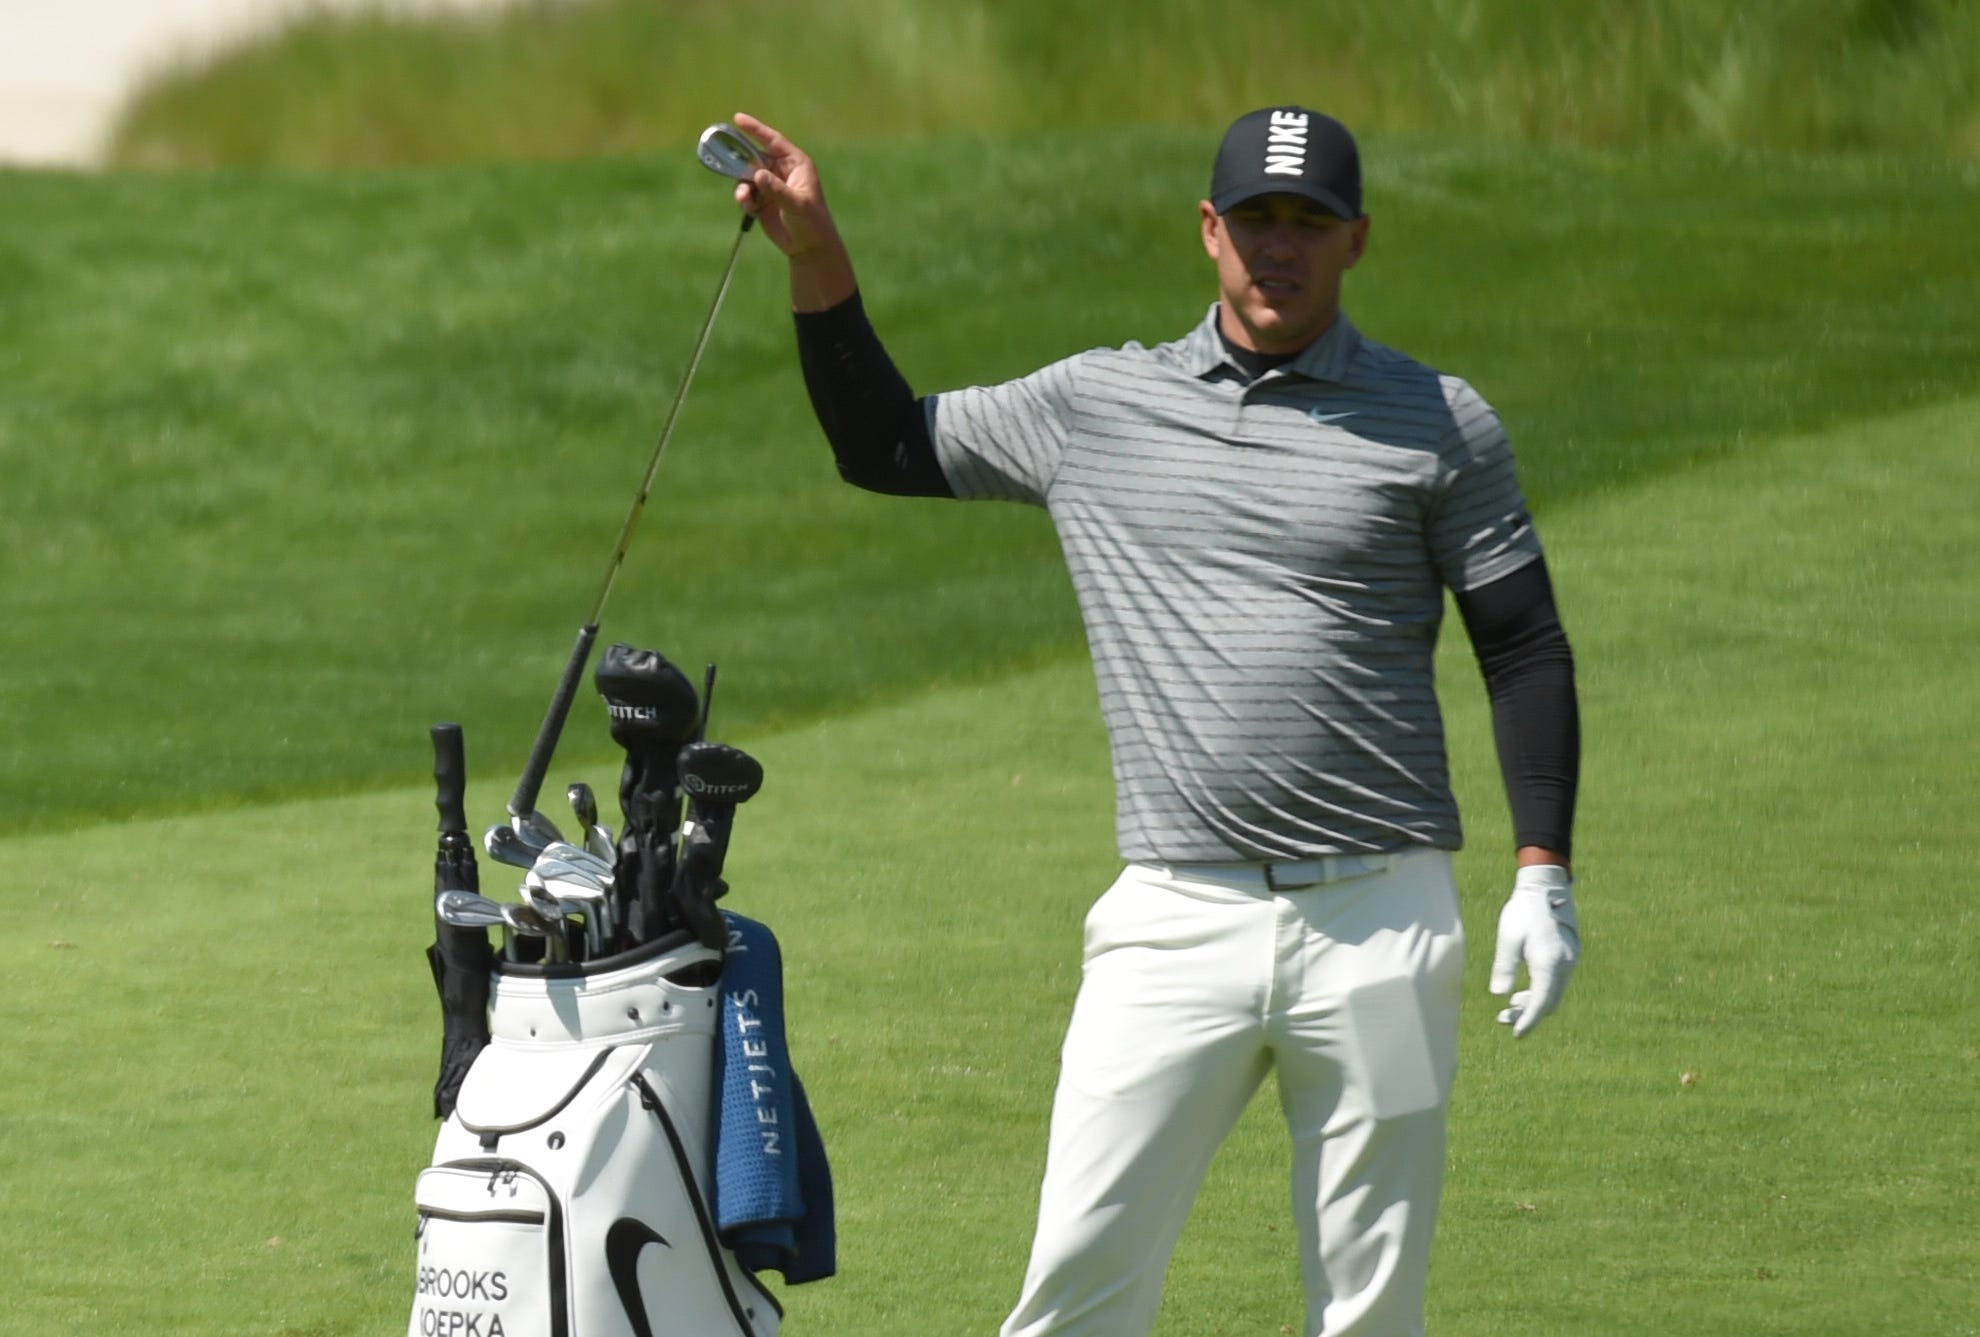 Practice round: Brooks Koepka, the defending champion, selects his club on the 18th hole.